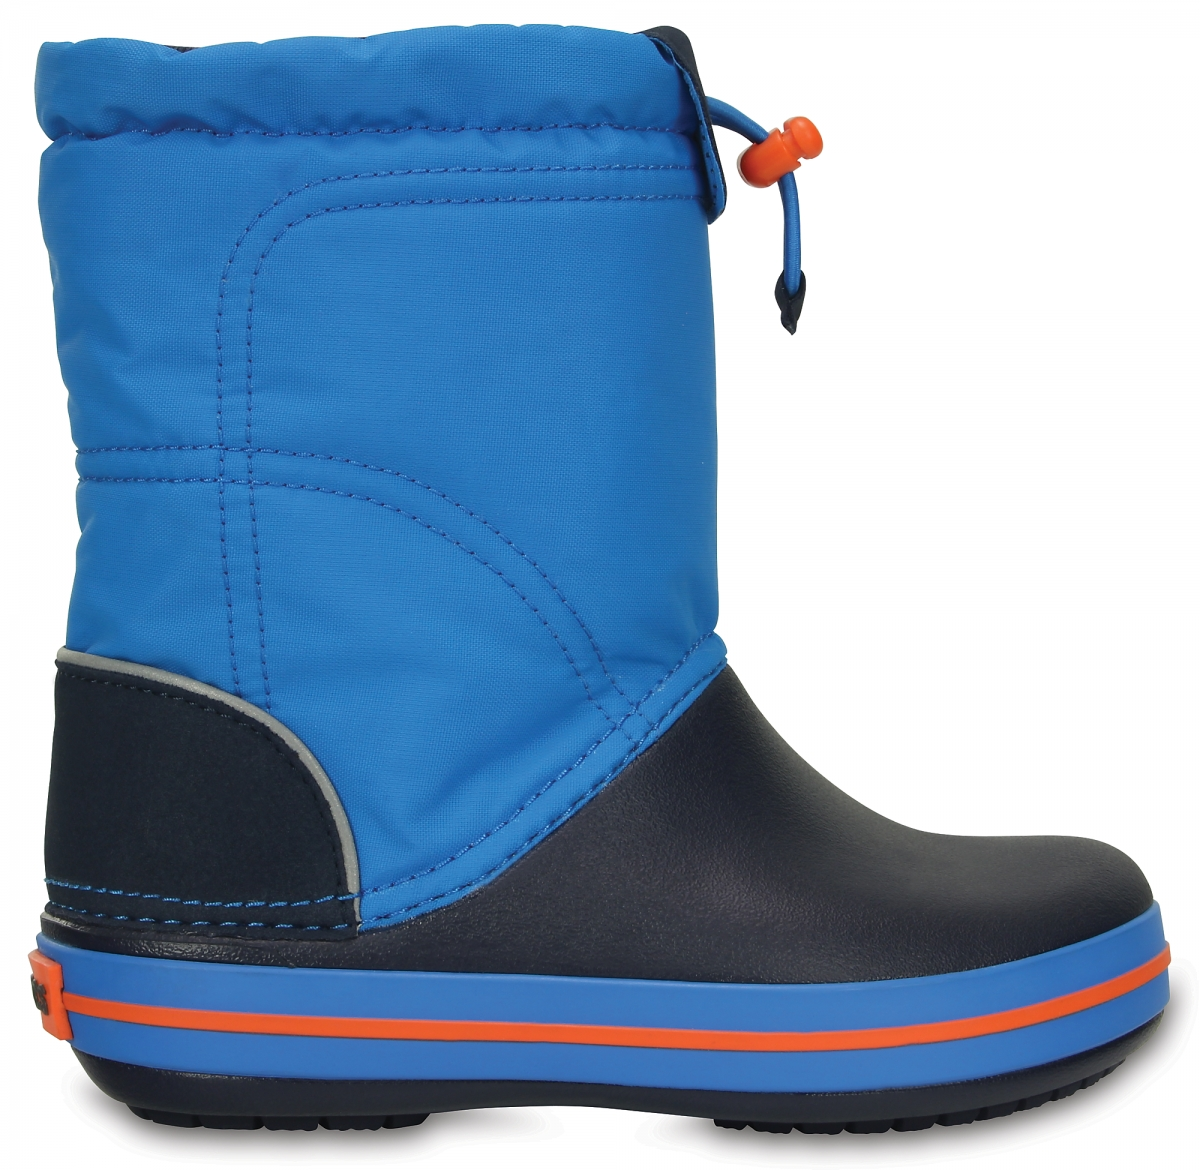 Crocs Crocband LodgePoint Boot Kids - Ocean/Navy, J2 (33-34)